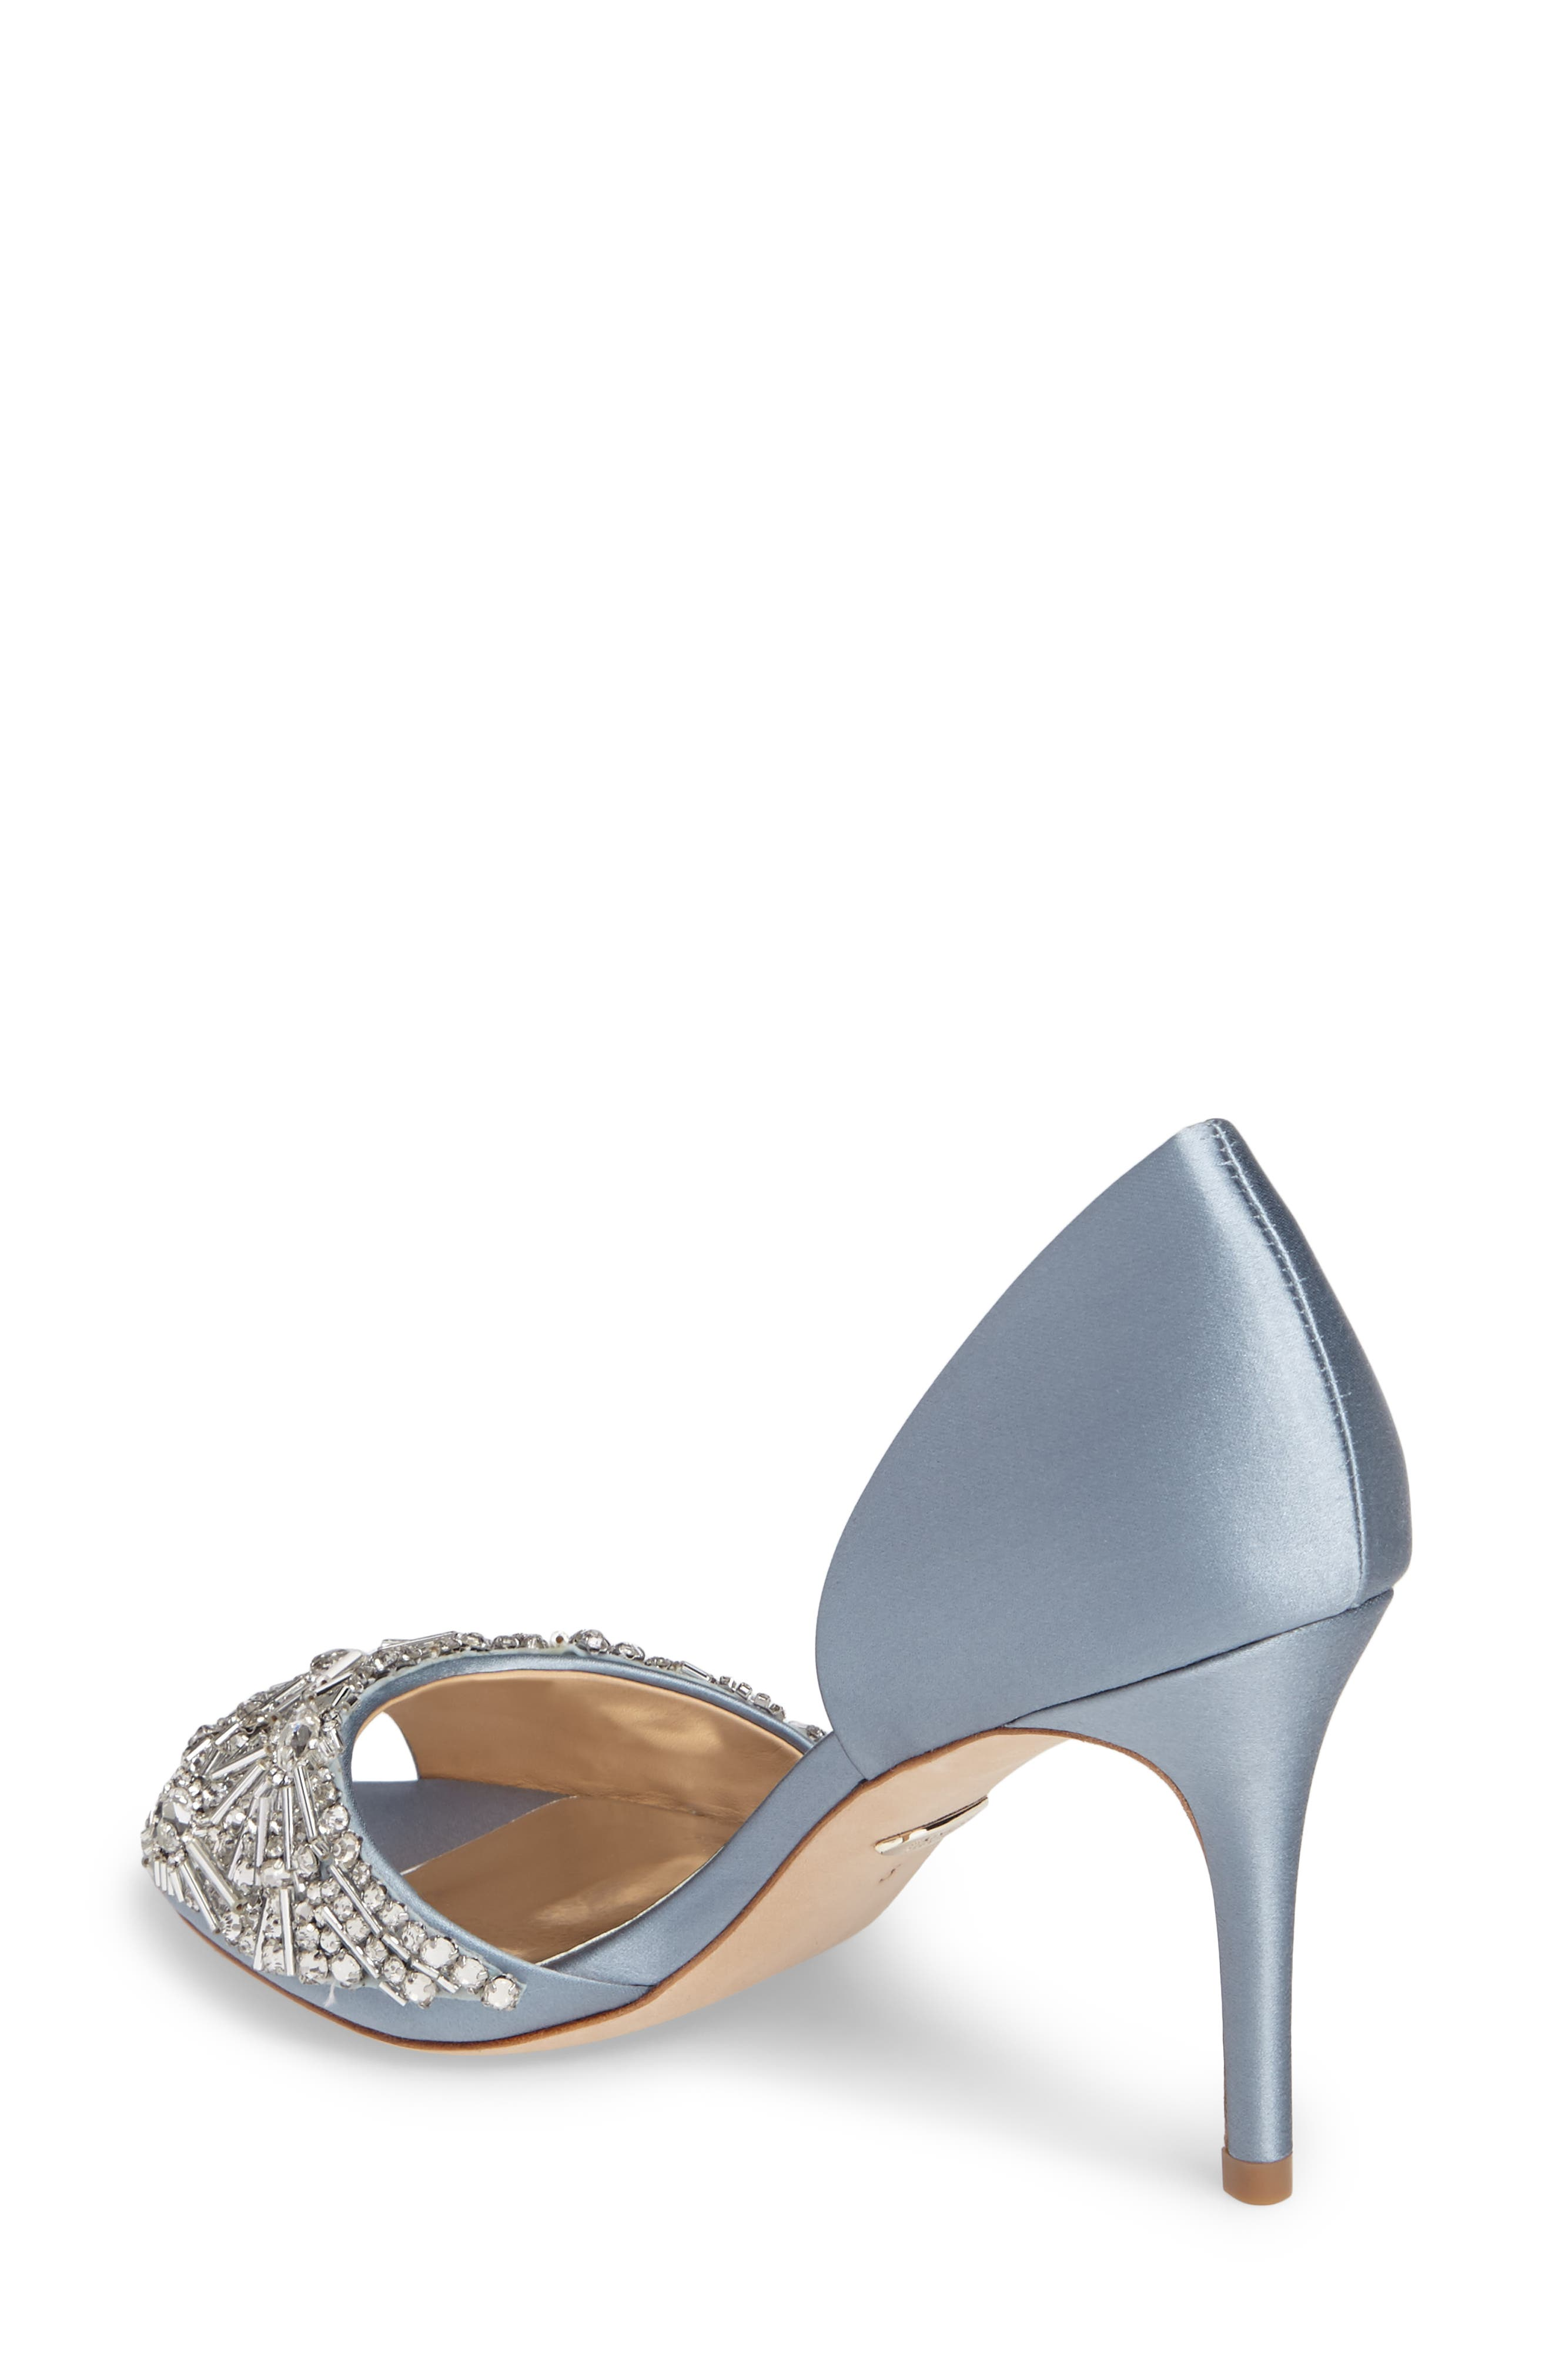 Maria Embellished d'Orsay Pump,                             Alternate thumbnail 10, color,